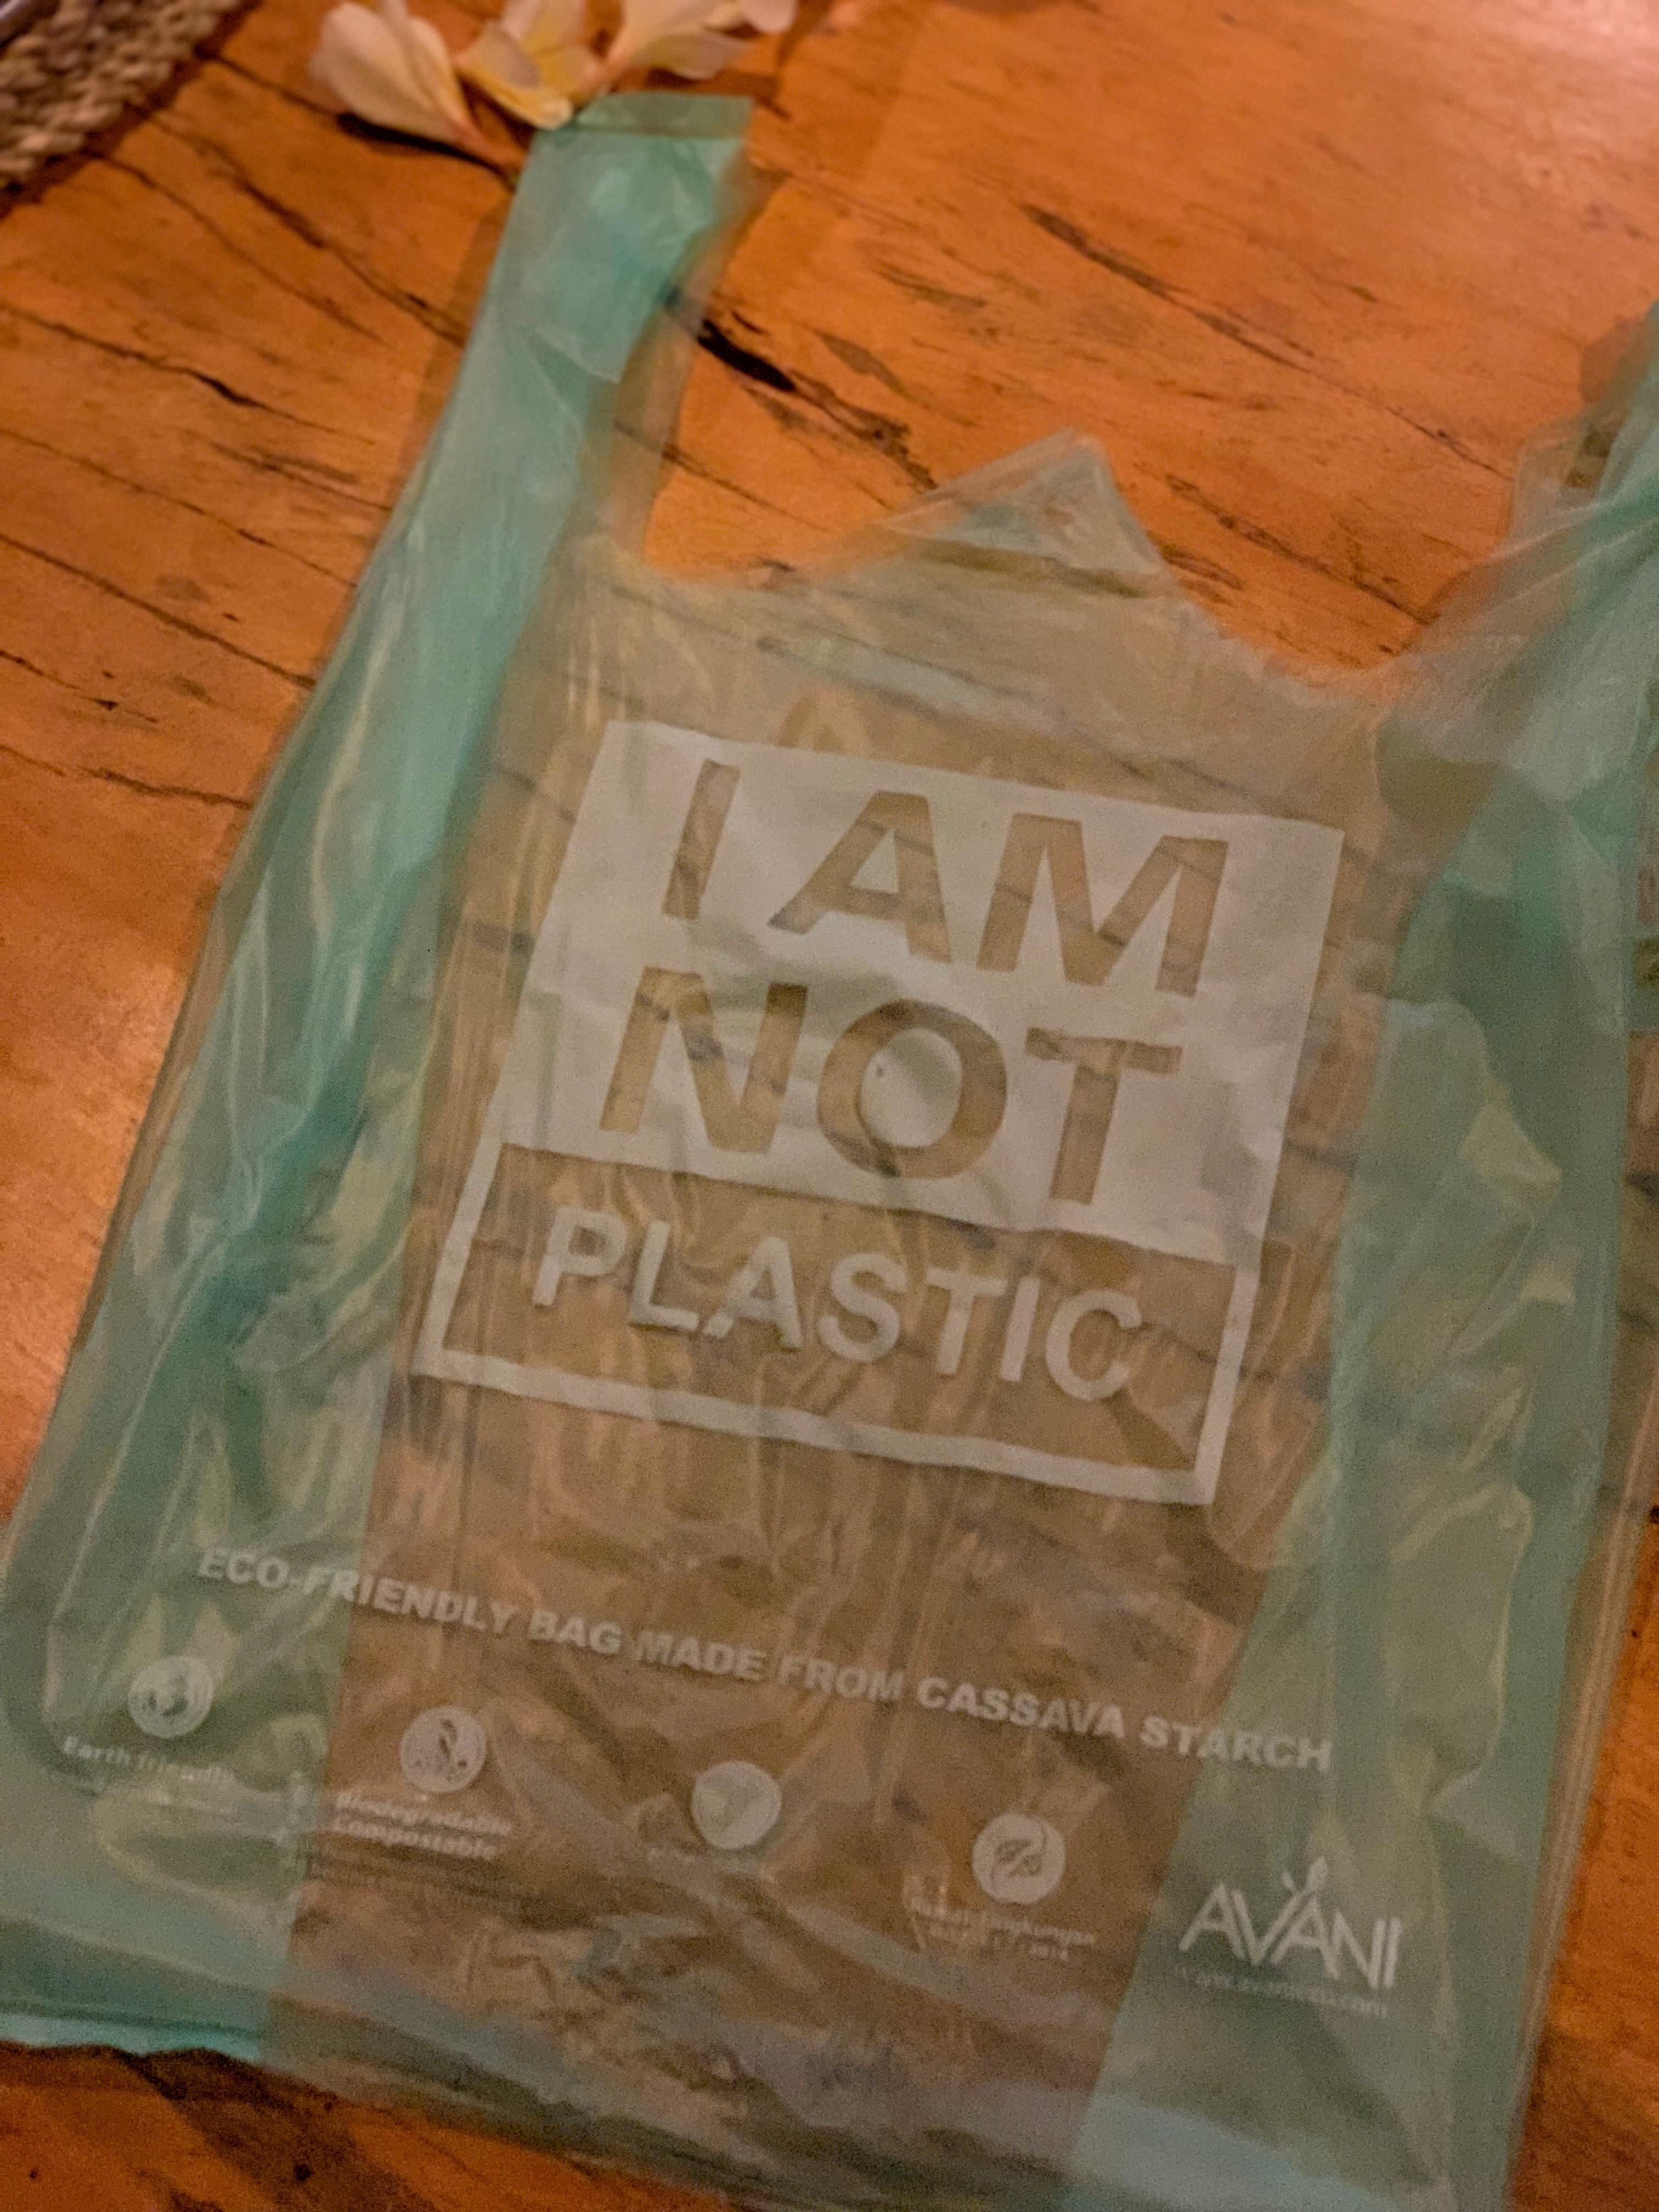 I Am Not Plastic - cassava starch bags that returns to